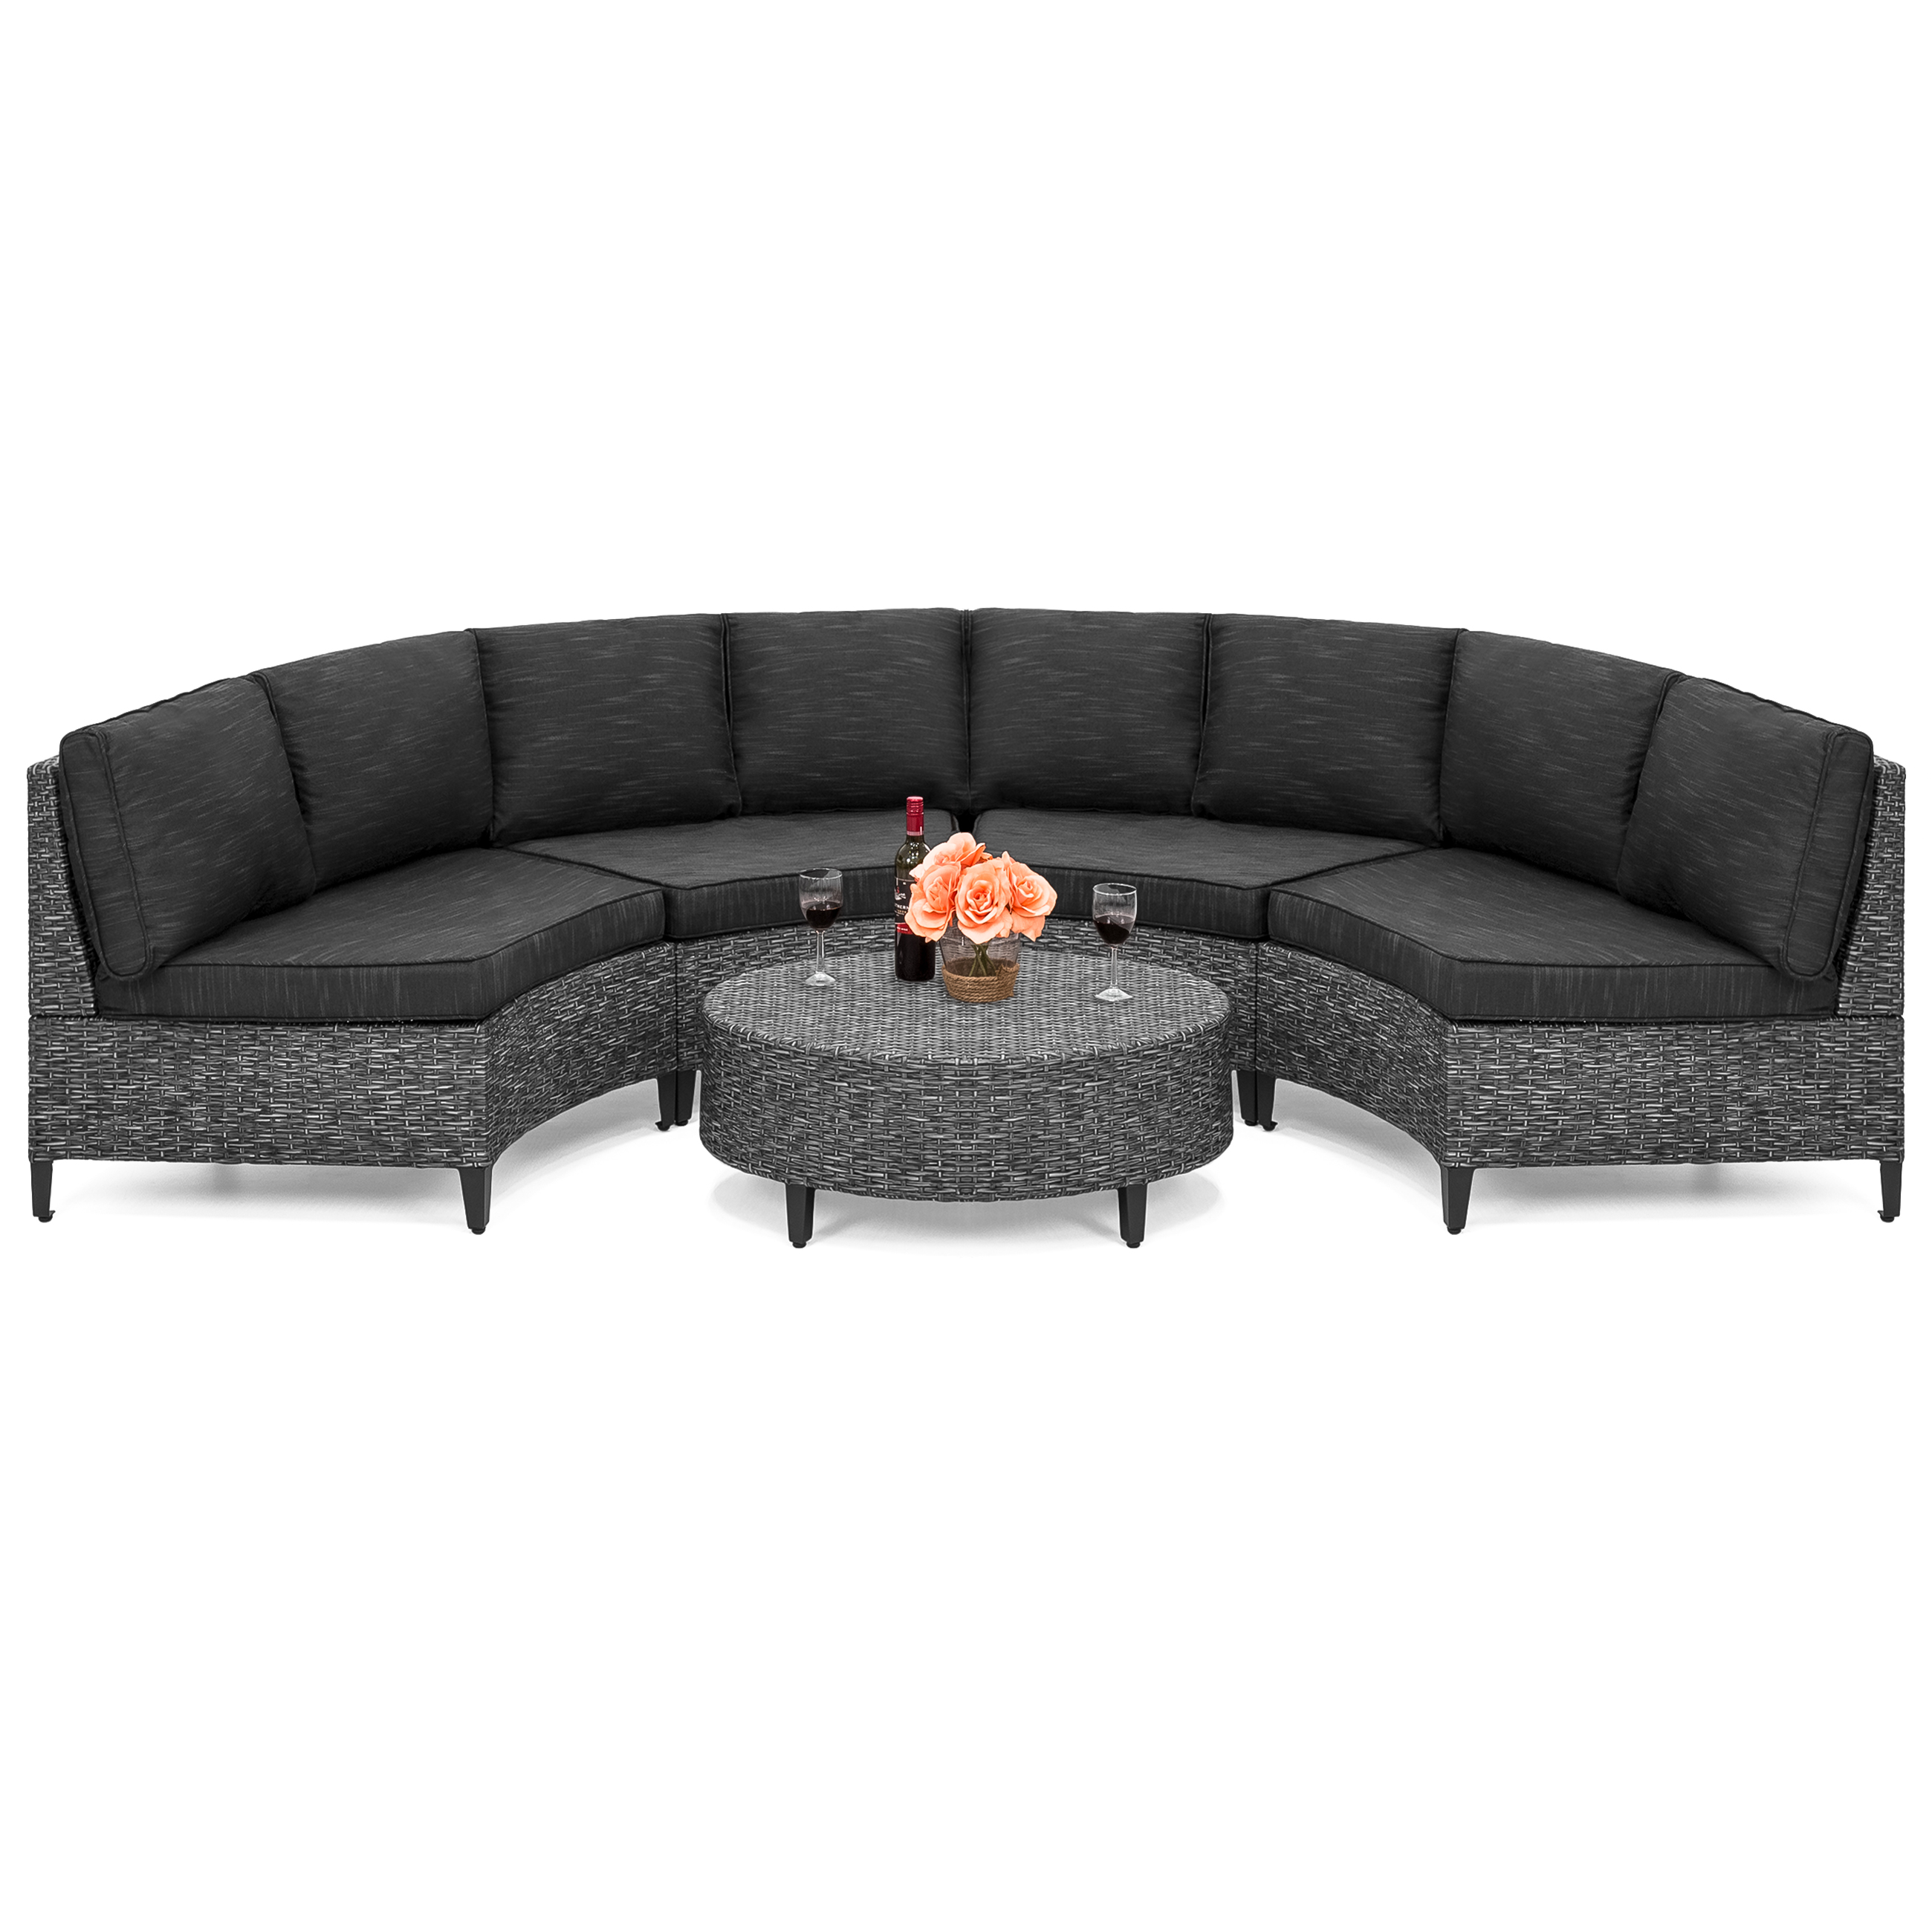 Best Choice Products 5 Piece Modern Outdoor Patio Semi Circle Wicker Sectional Sofa Set W 4 Seats Coffee Table Gray